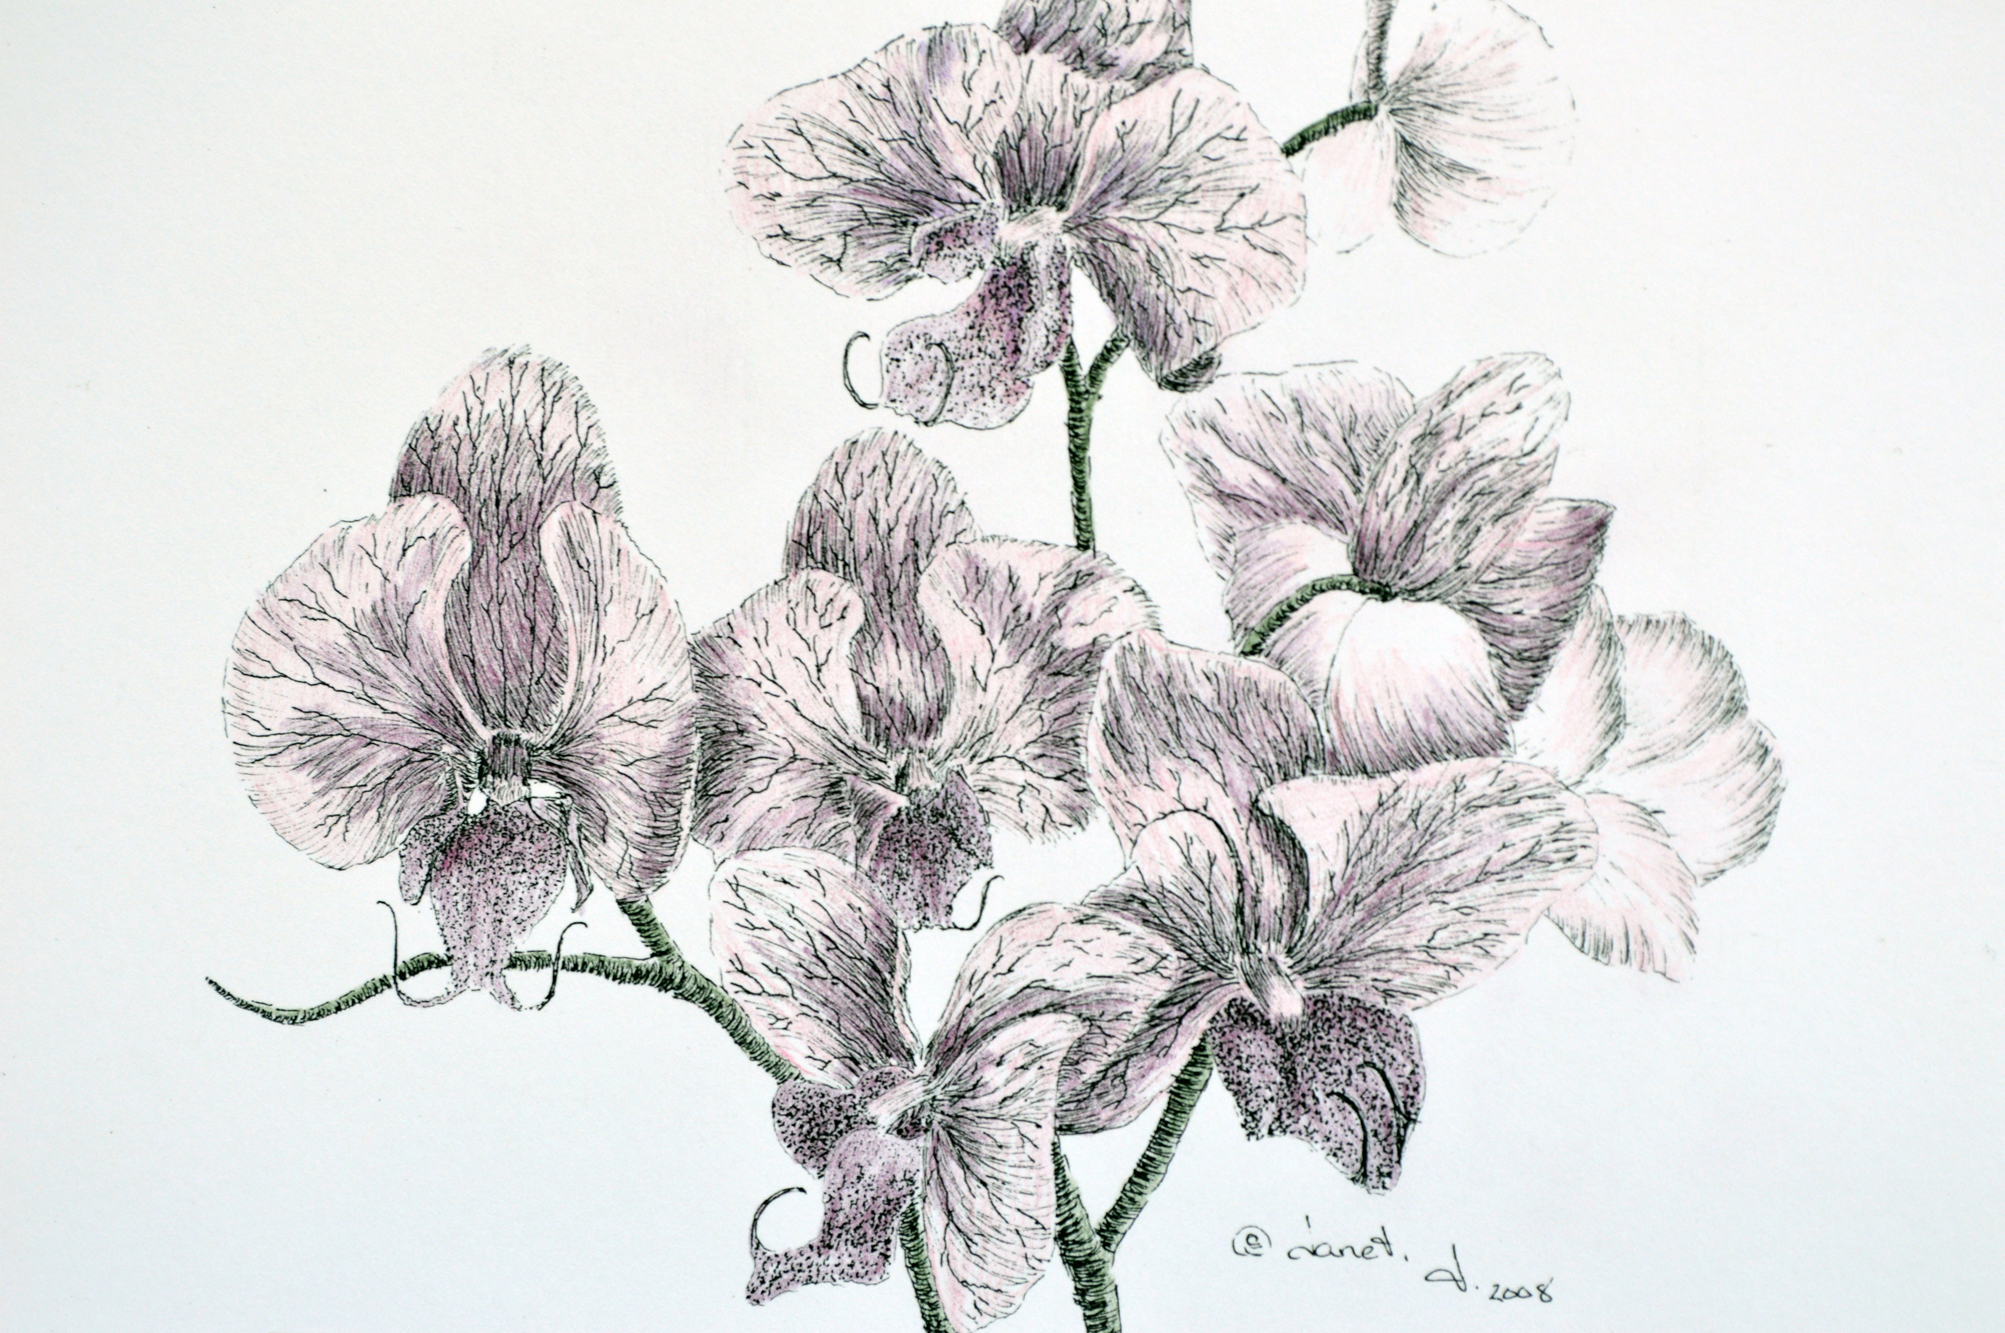 Pen & Ink + Watercolor = Orchids